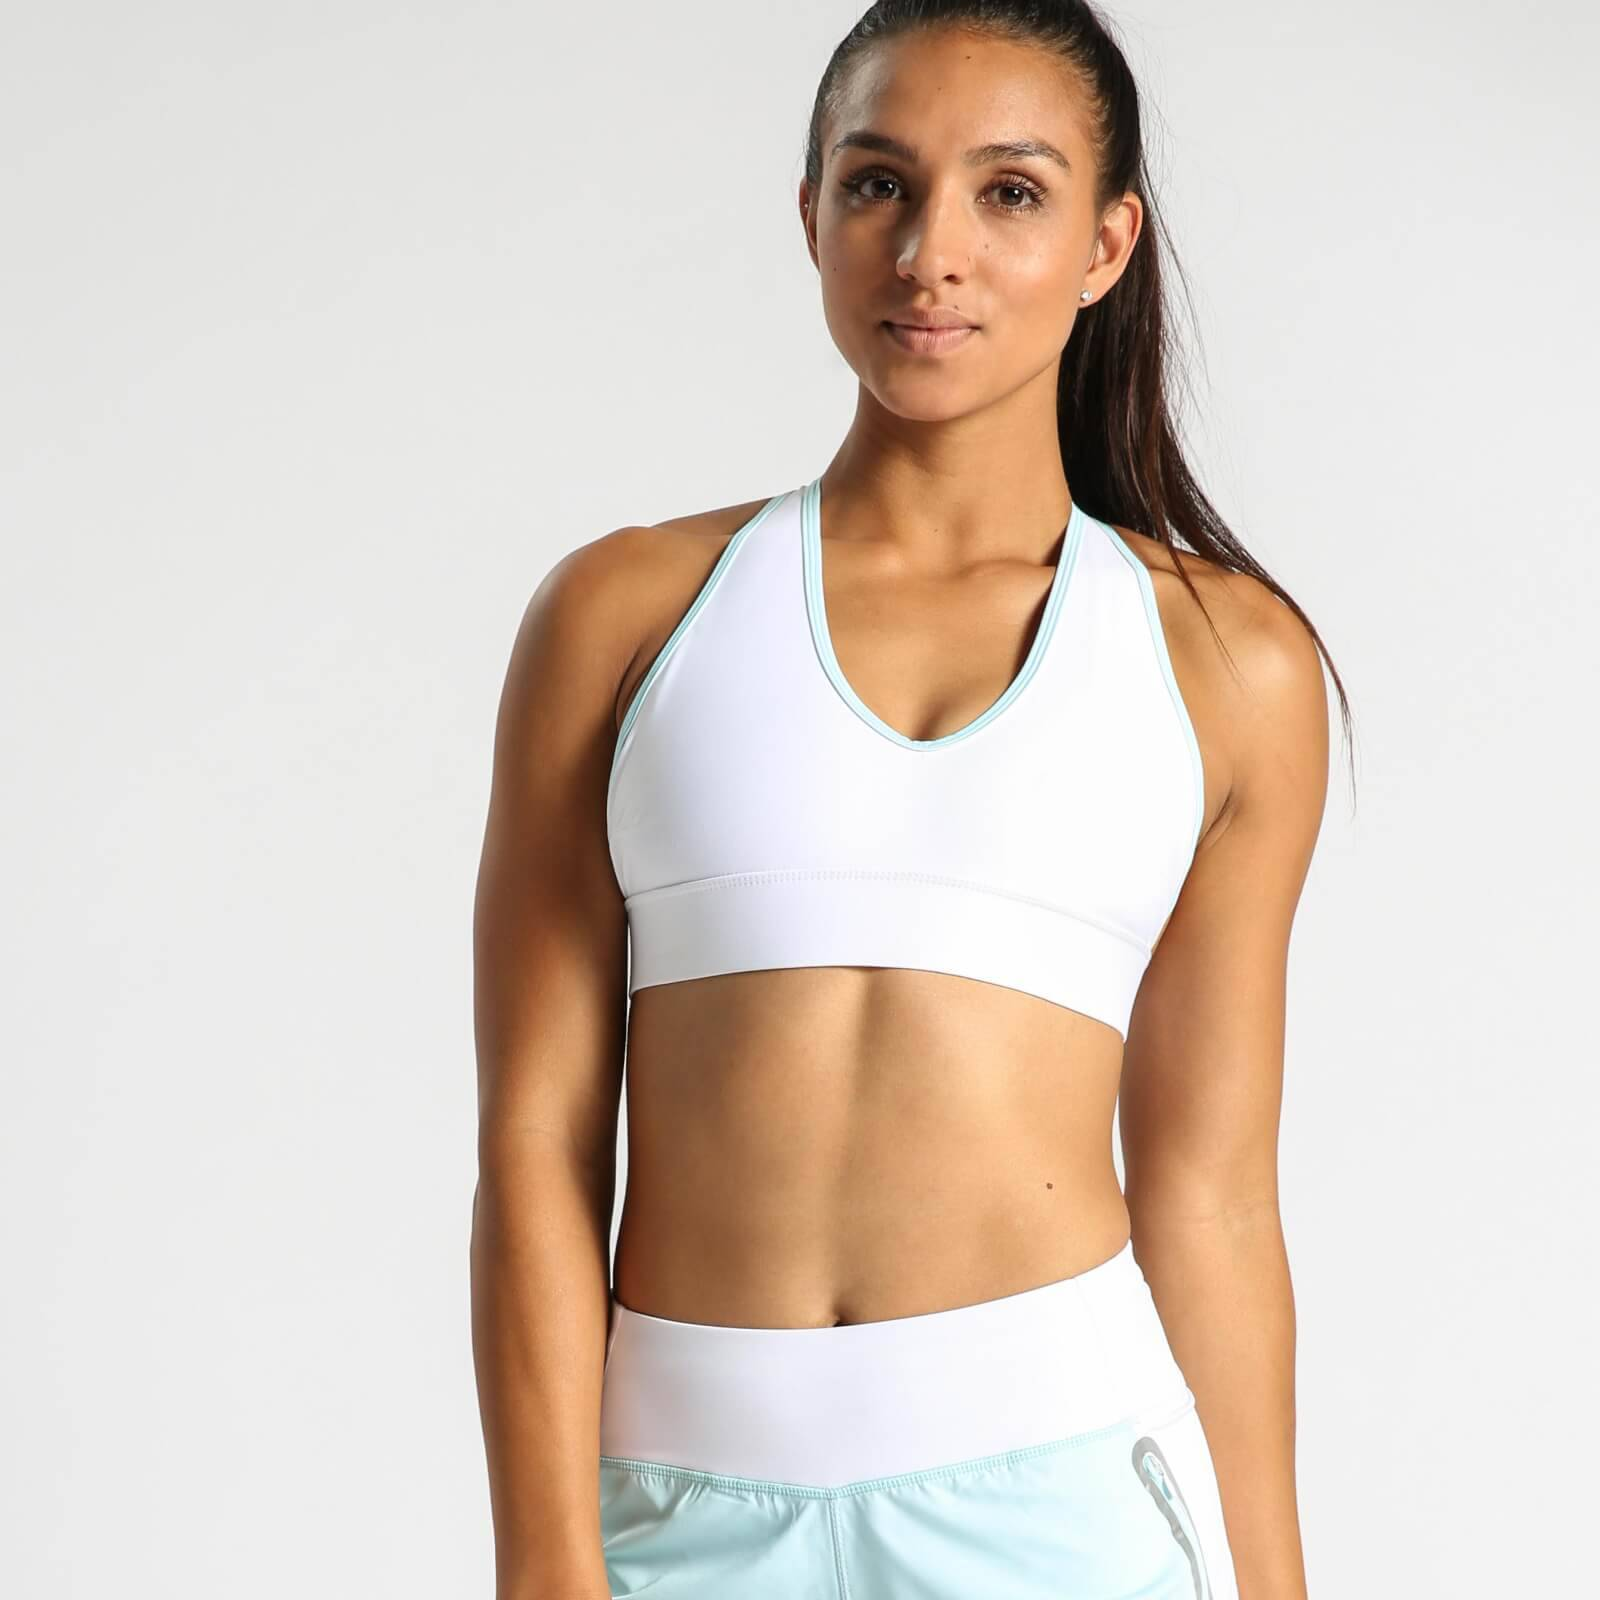 IdealFit Halter Bra with Band - White - S - White